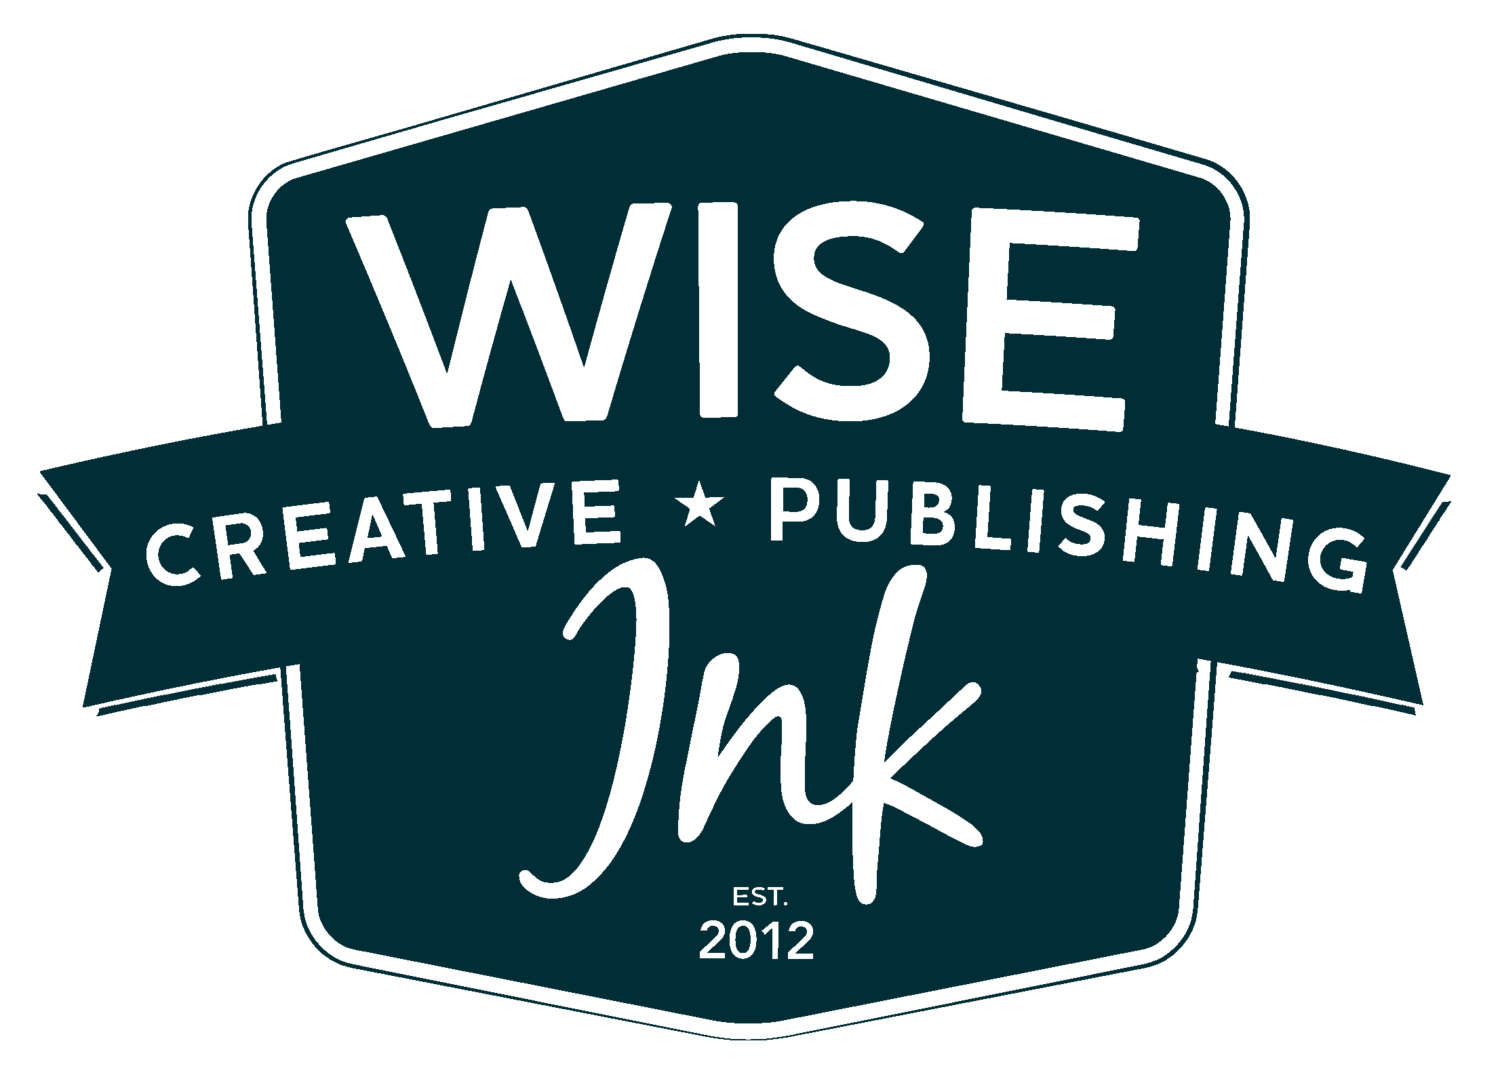 Manager clipart publisher. Wise ink creative publishing